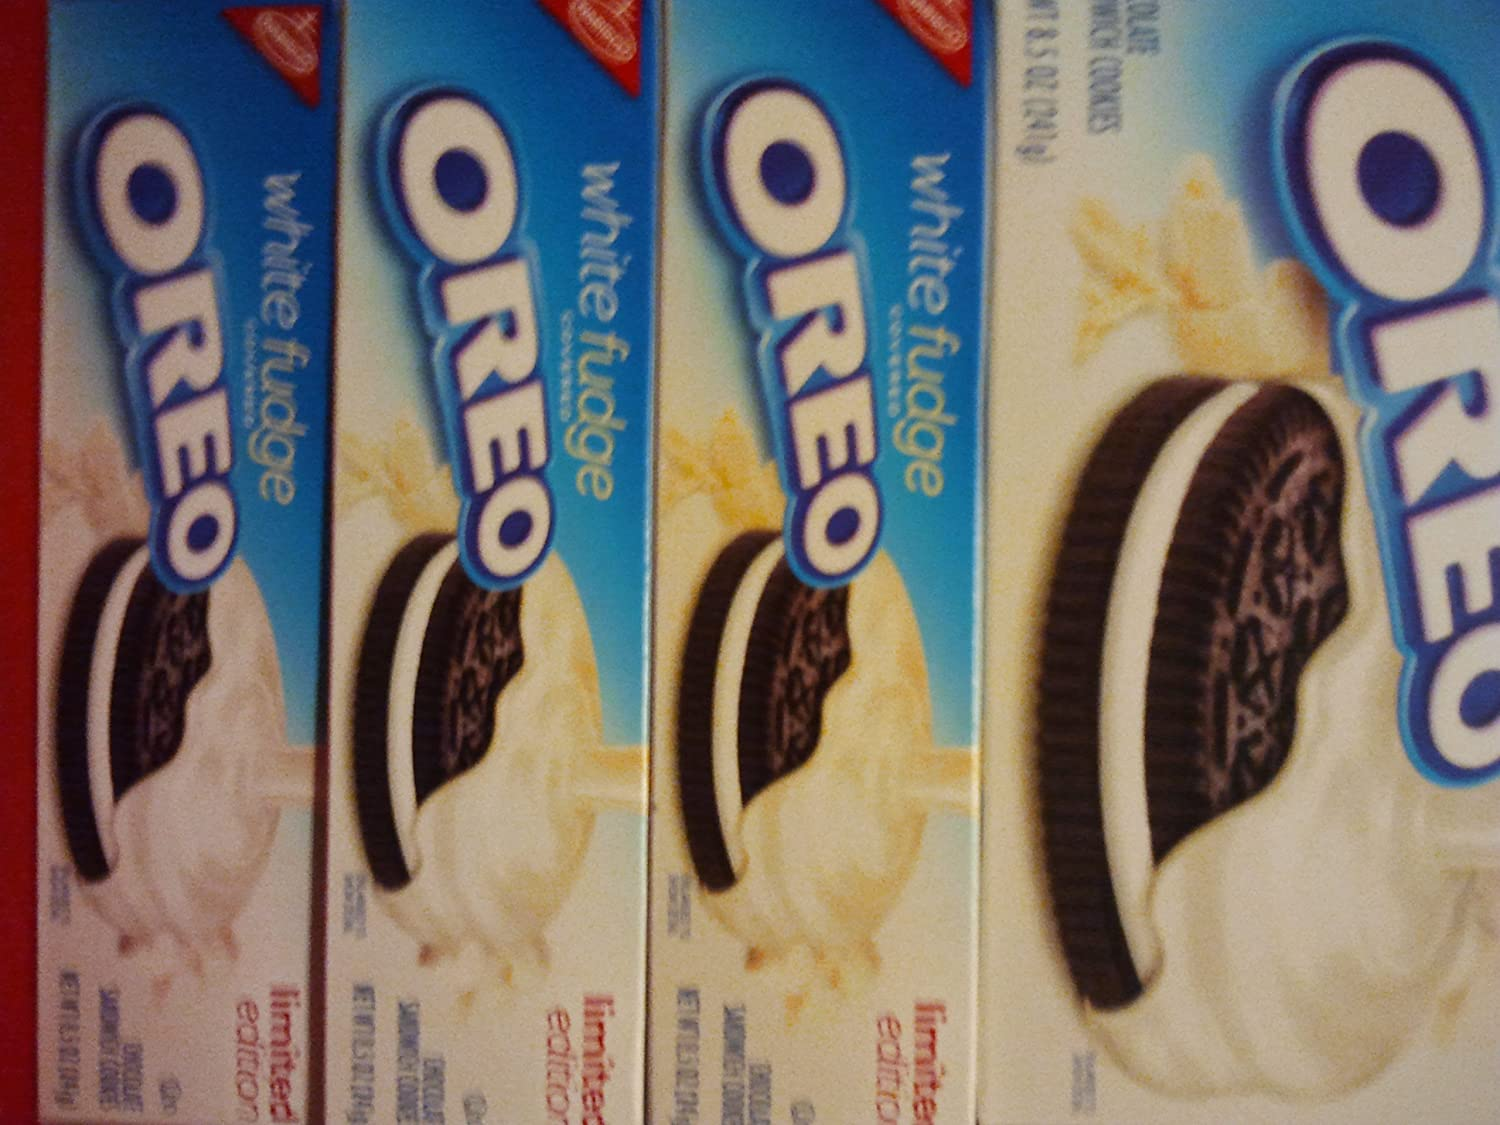 Amazon.com: White Fudge Covered Oreo, Limited Editon Chocolate ...